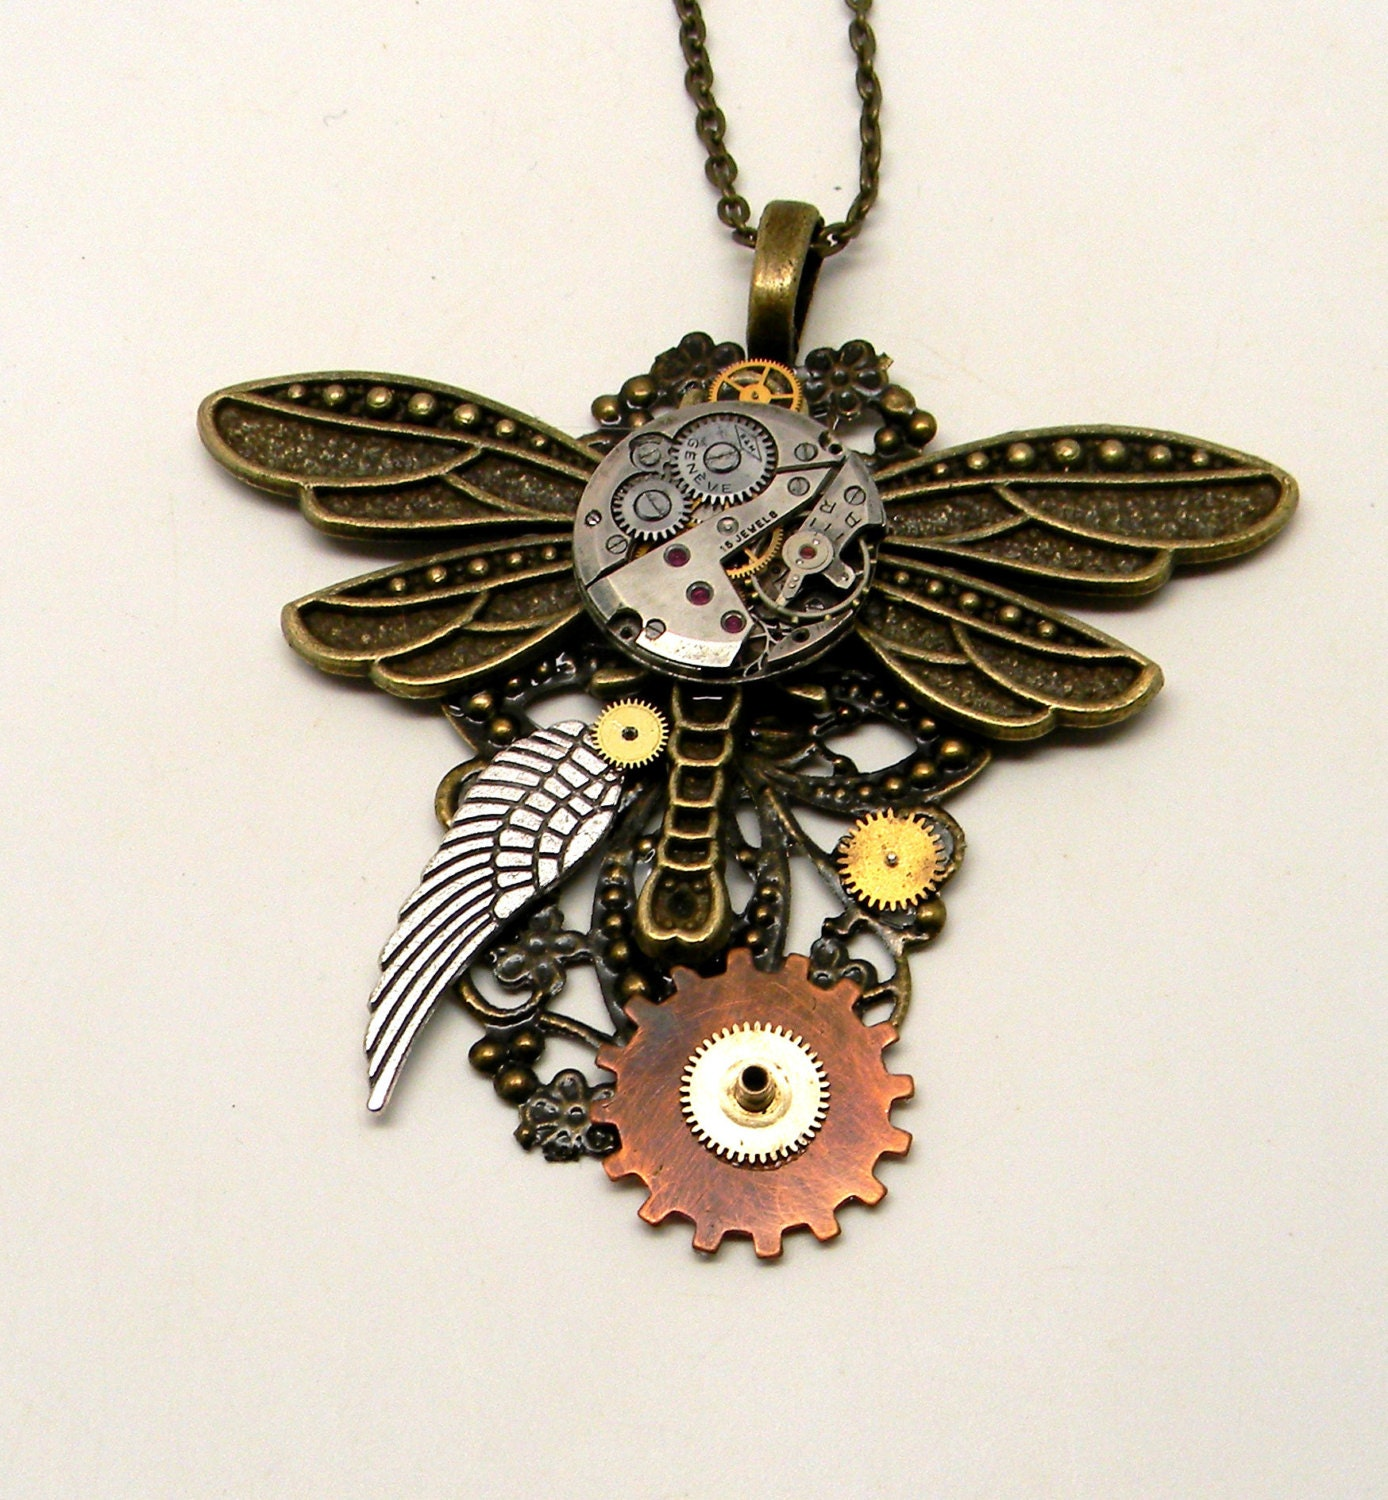 Steampunk jewelry large dragonfly necklace pendant.